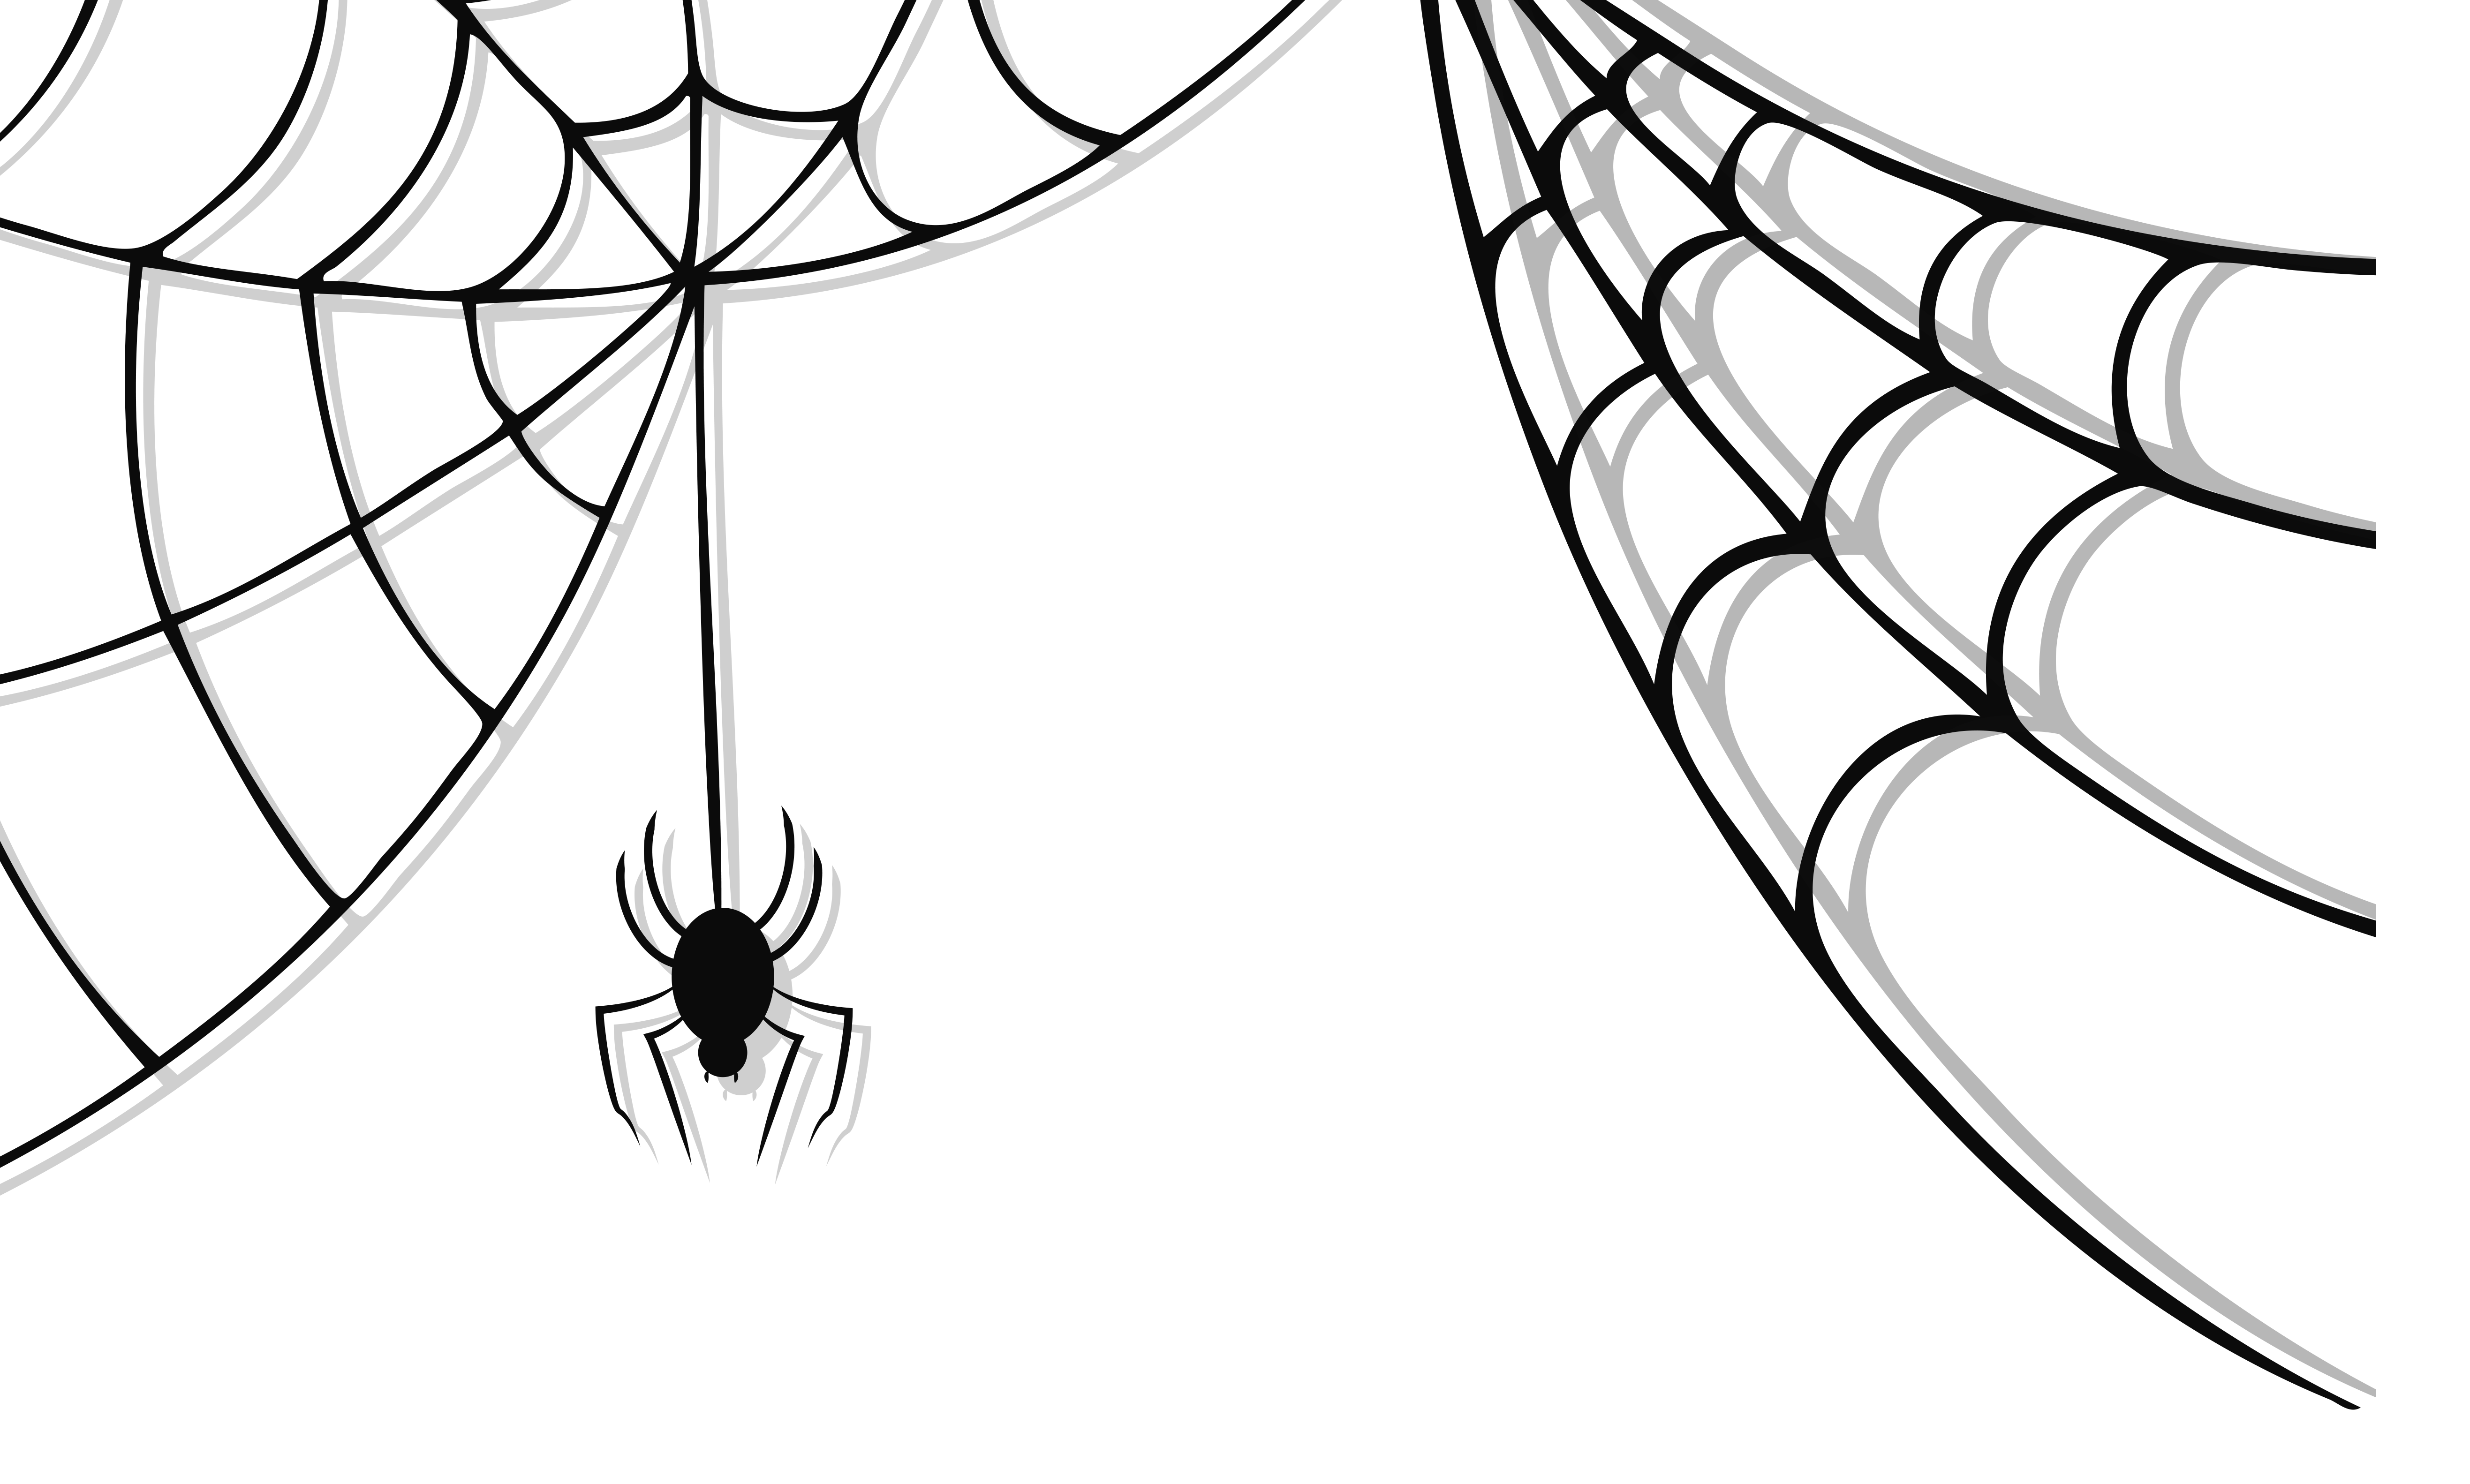 5267x3165 The Spider Web Drawing Ideas On Black Widow Clipart